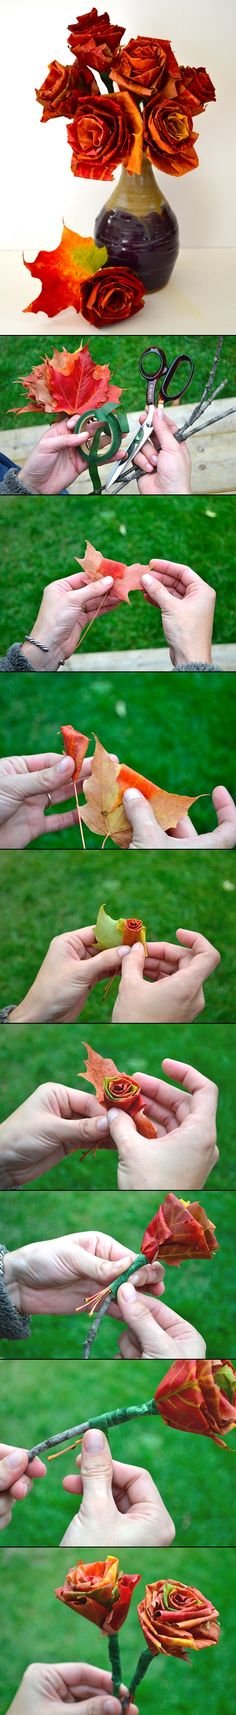 DIY PROJECT: AUTUMN LEAF BOUQUET